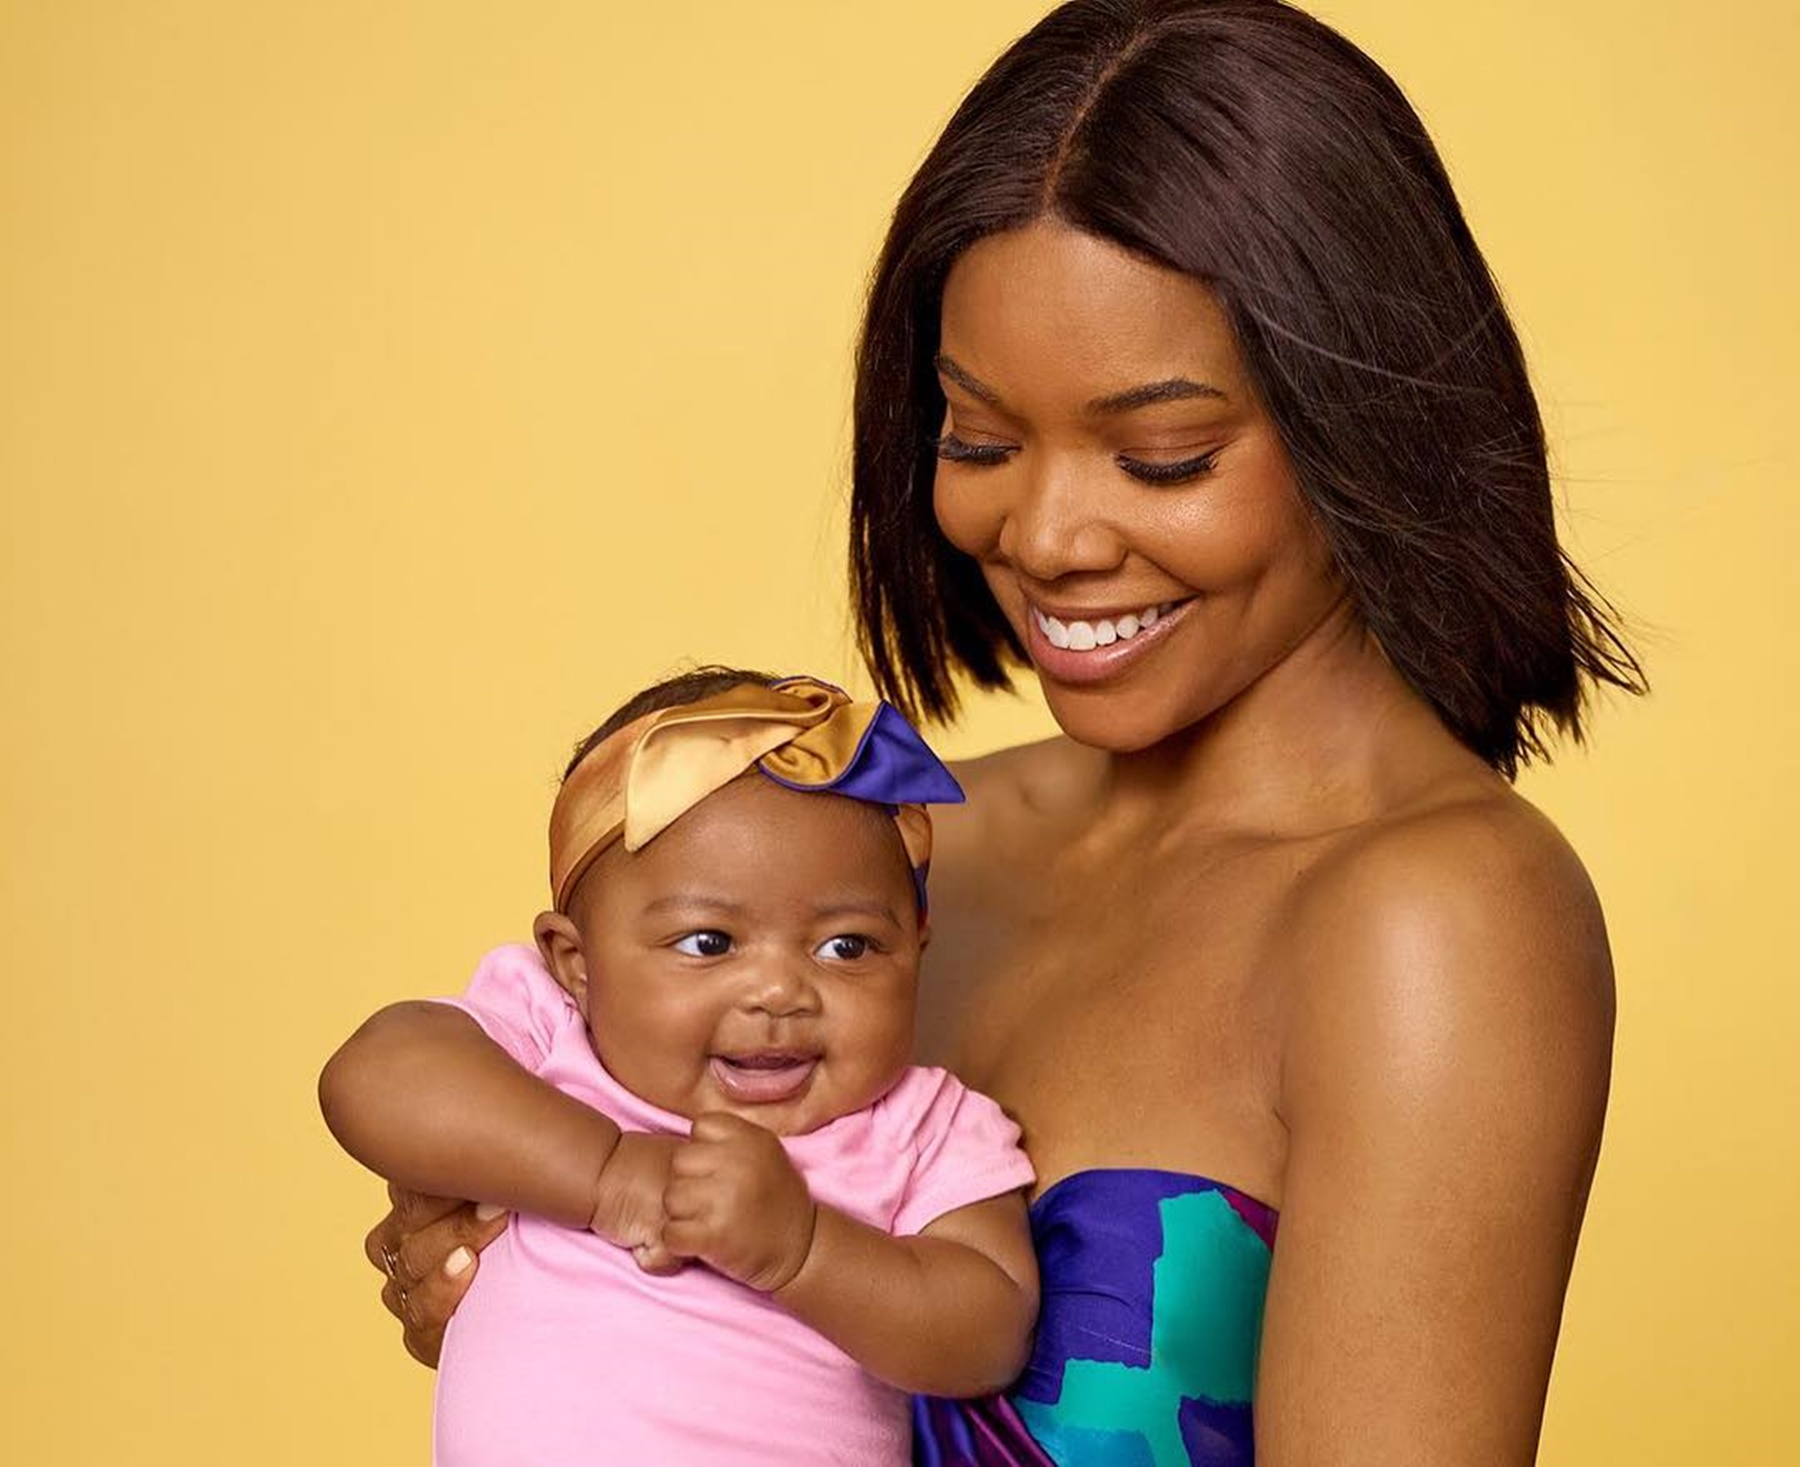 baby-kaavia-lands-first-magazine-cover-with-her-mom-gabrielle-union-fans-take-on-critics-of-dwayne-wades-child